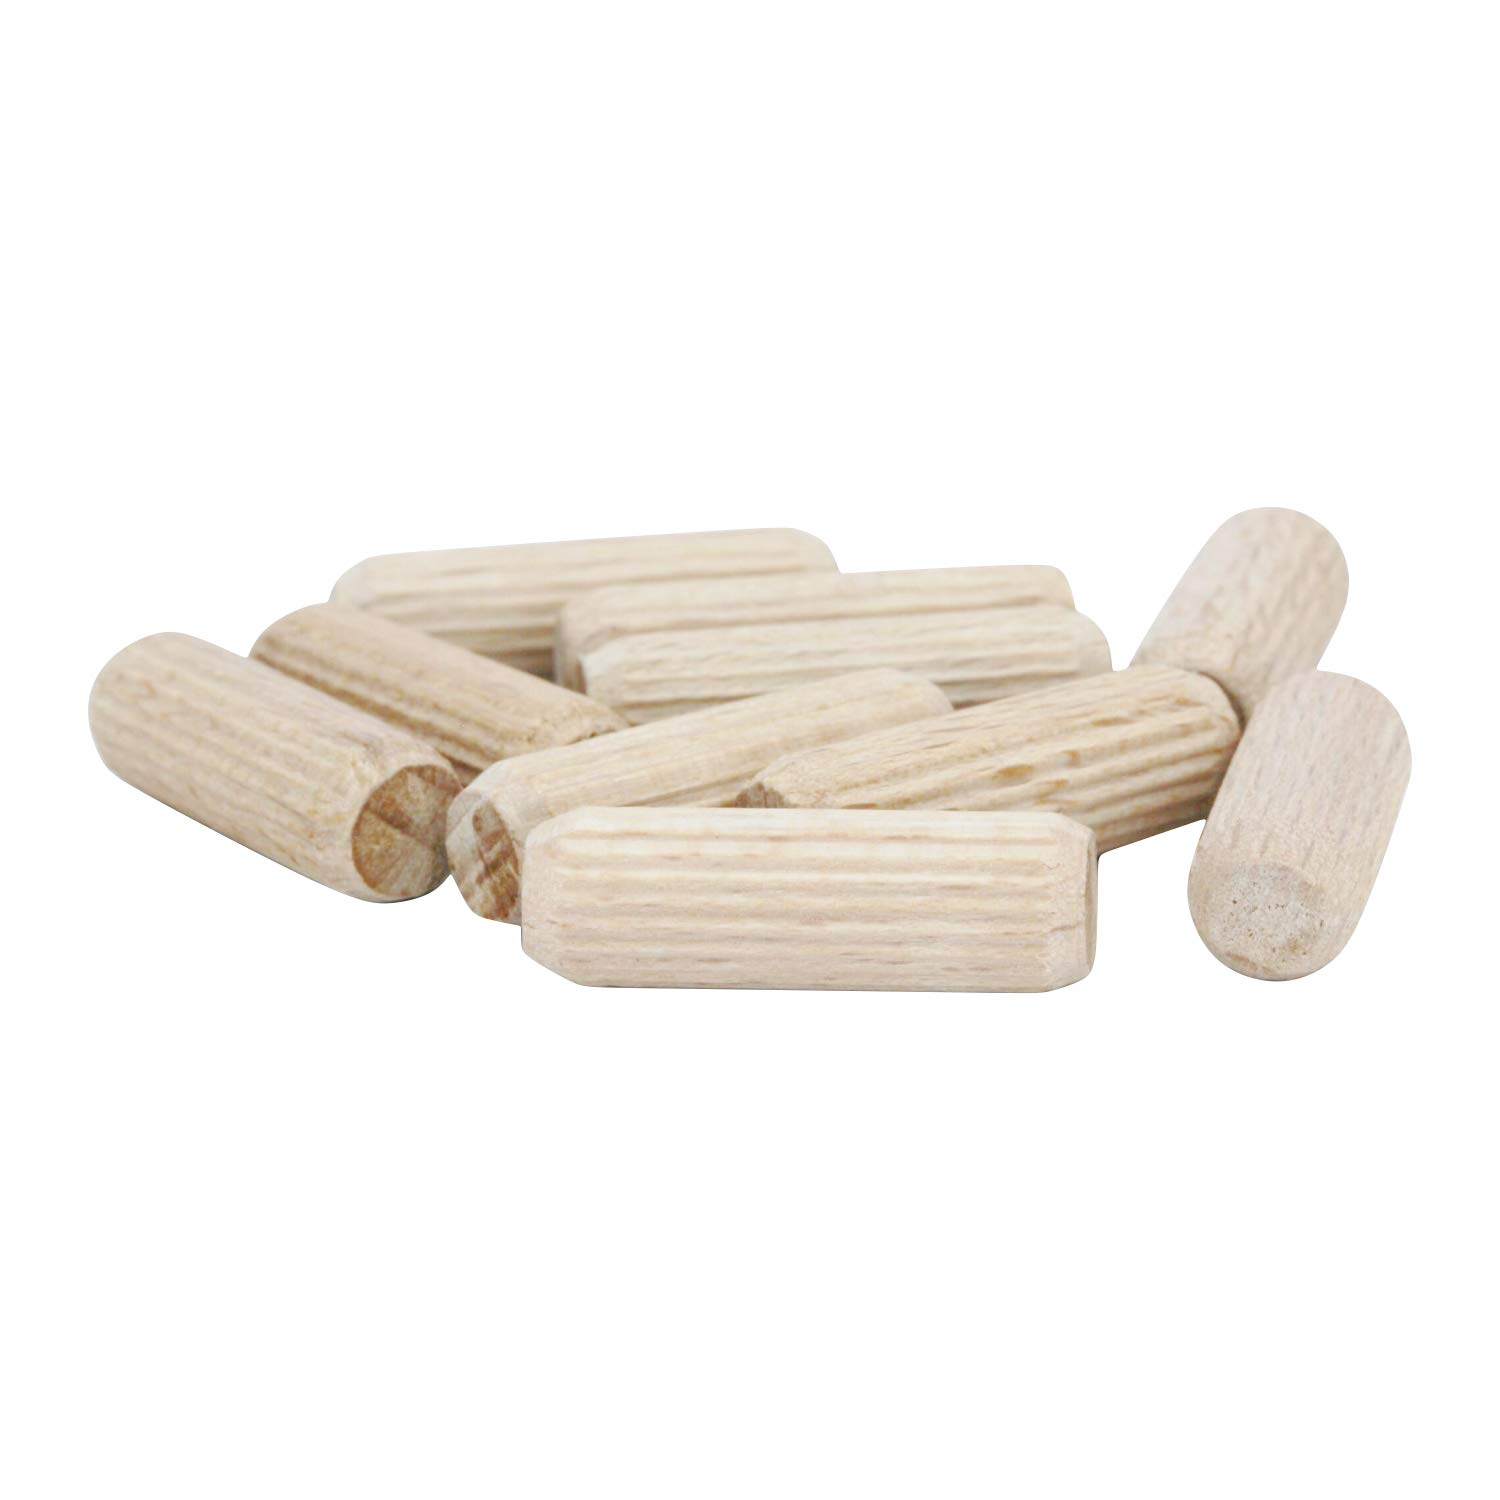 500 Pack Fluted 1'' x 5/16'' (8mm) Straight Wooden Dowel Pin Rods Grooved DOW516-1